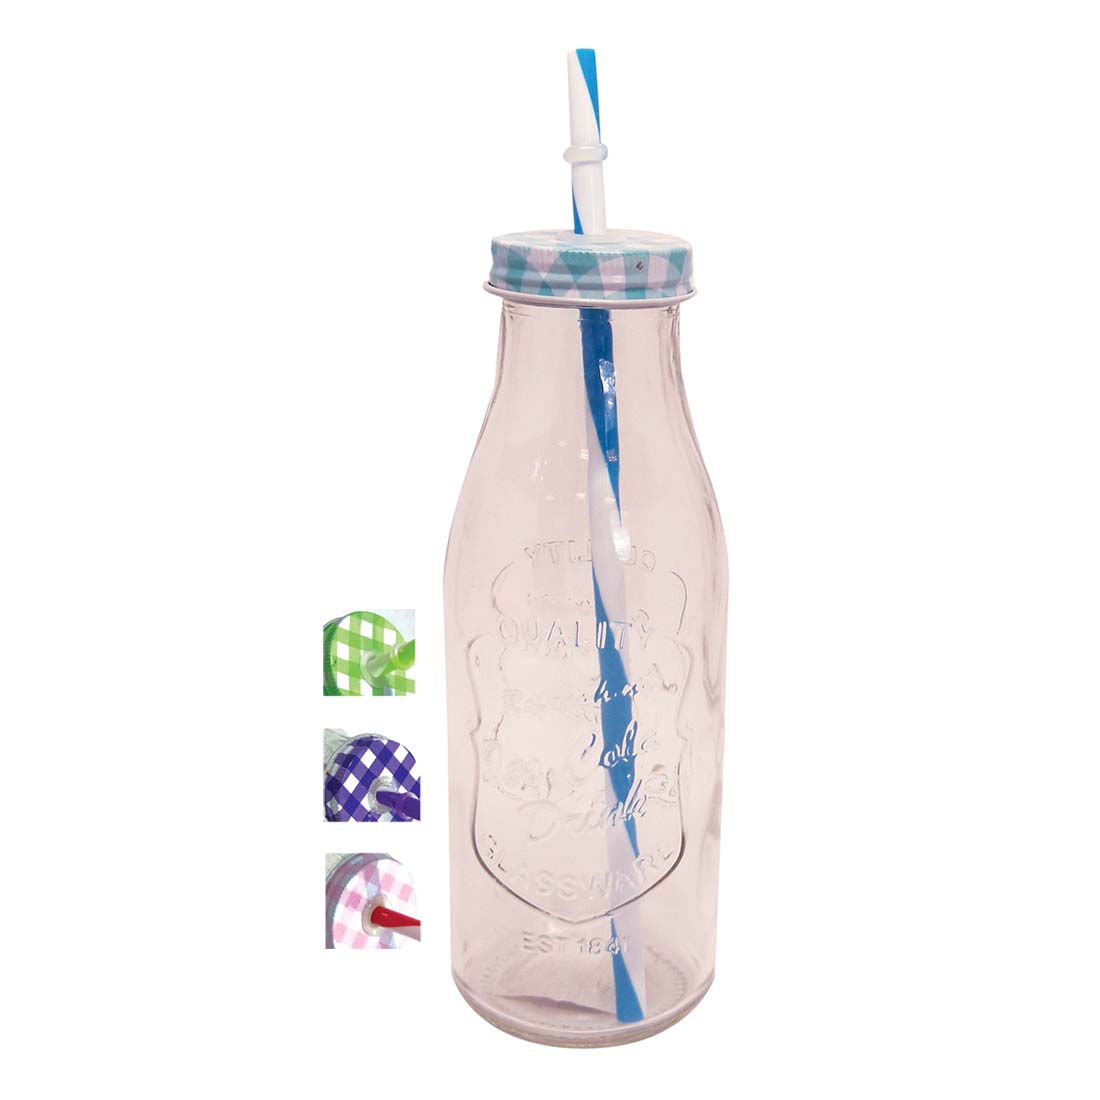 View GLASS DRINKING BOTTLE 17 OUNCE ASSORTED COLORED LIDS CHECKER DESIGNS